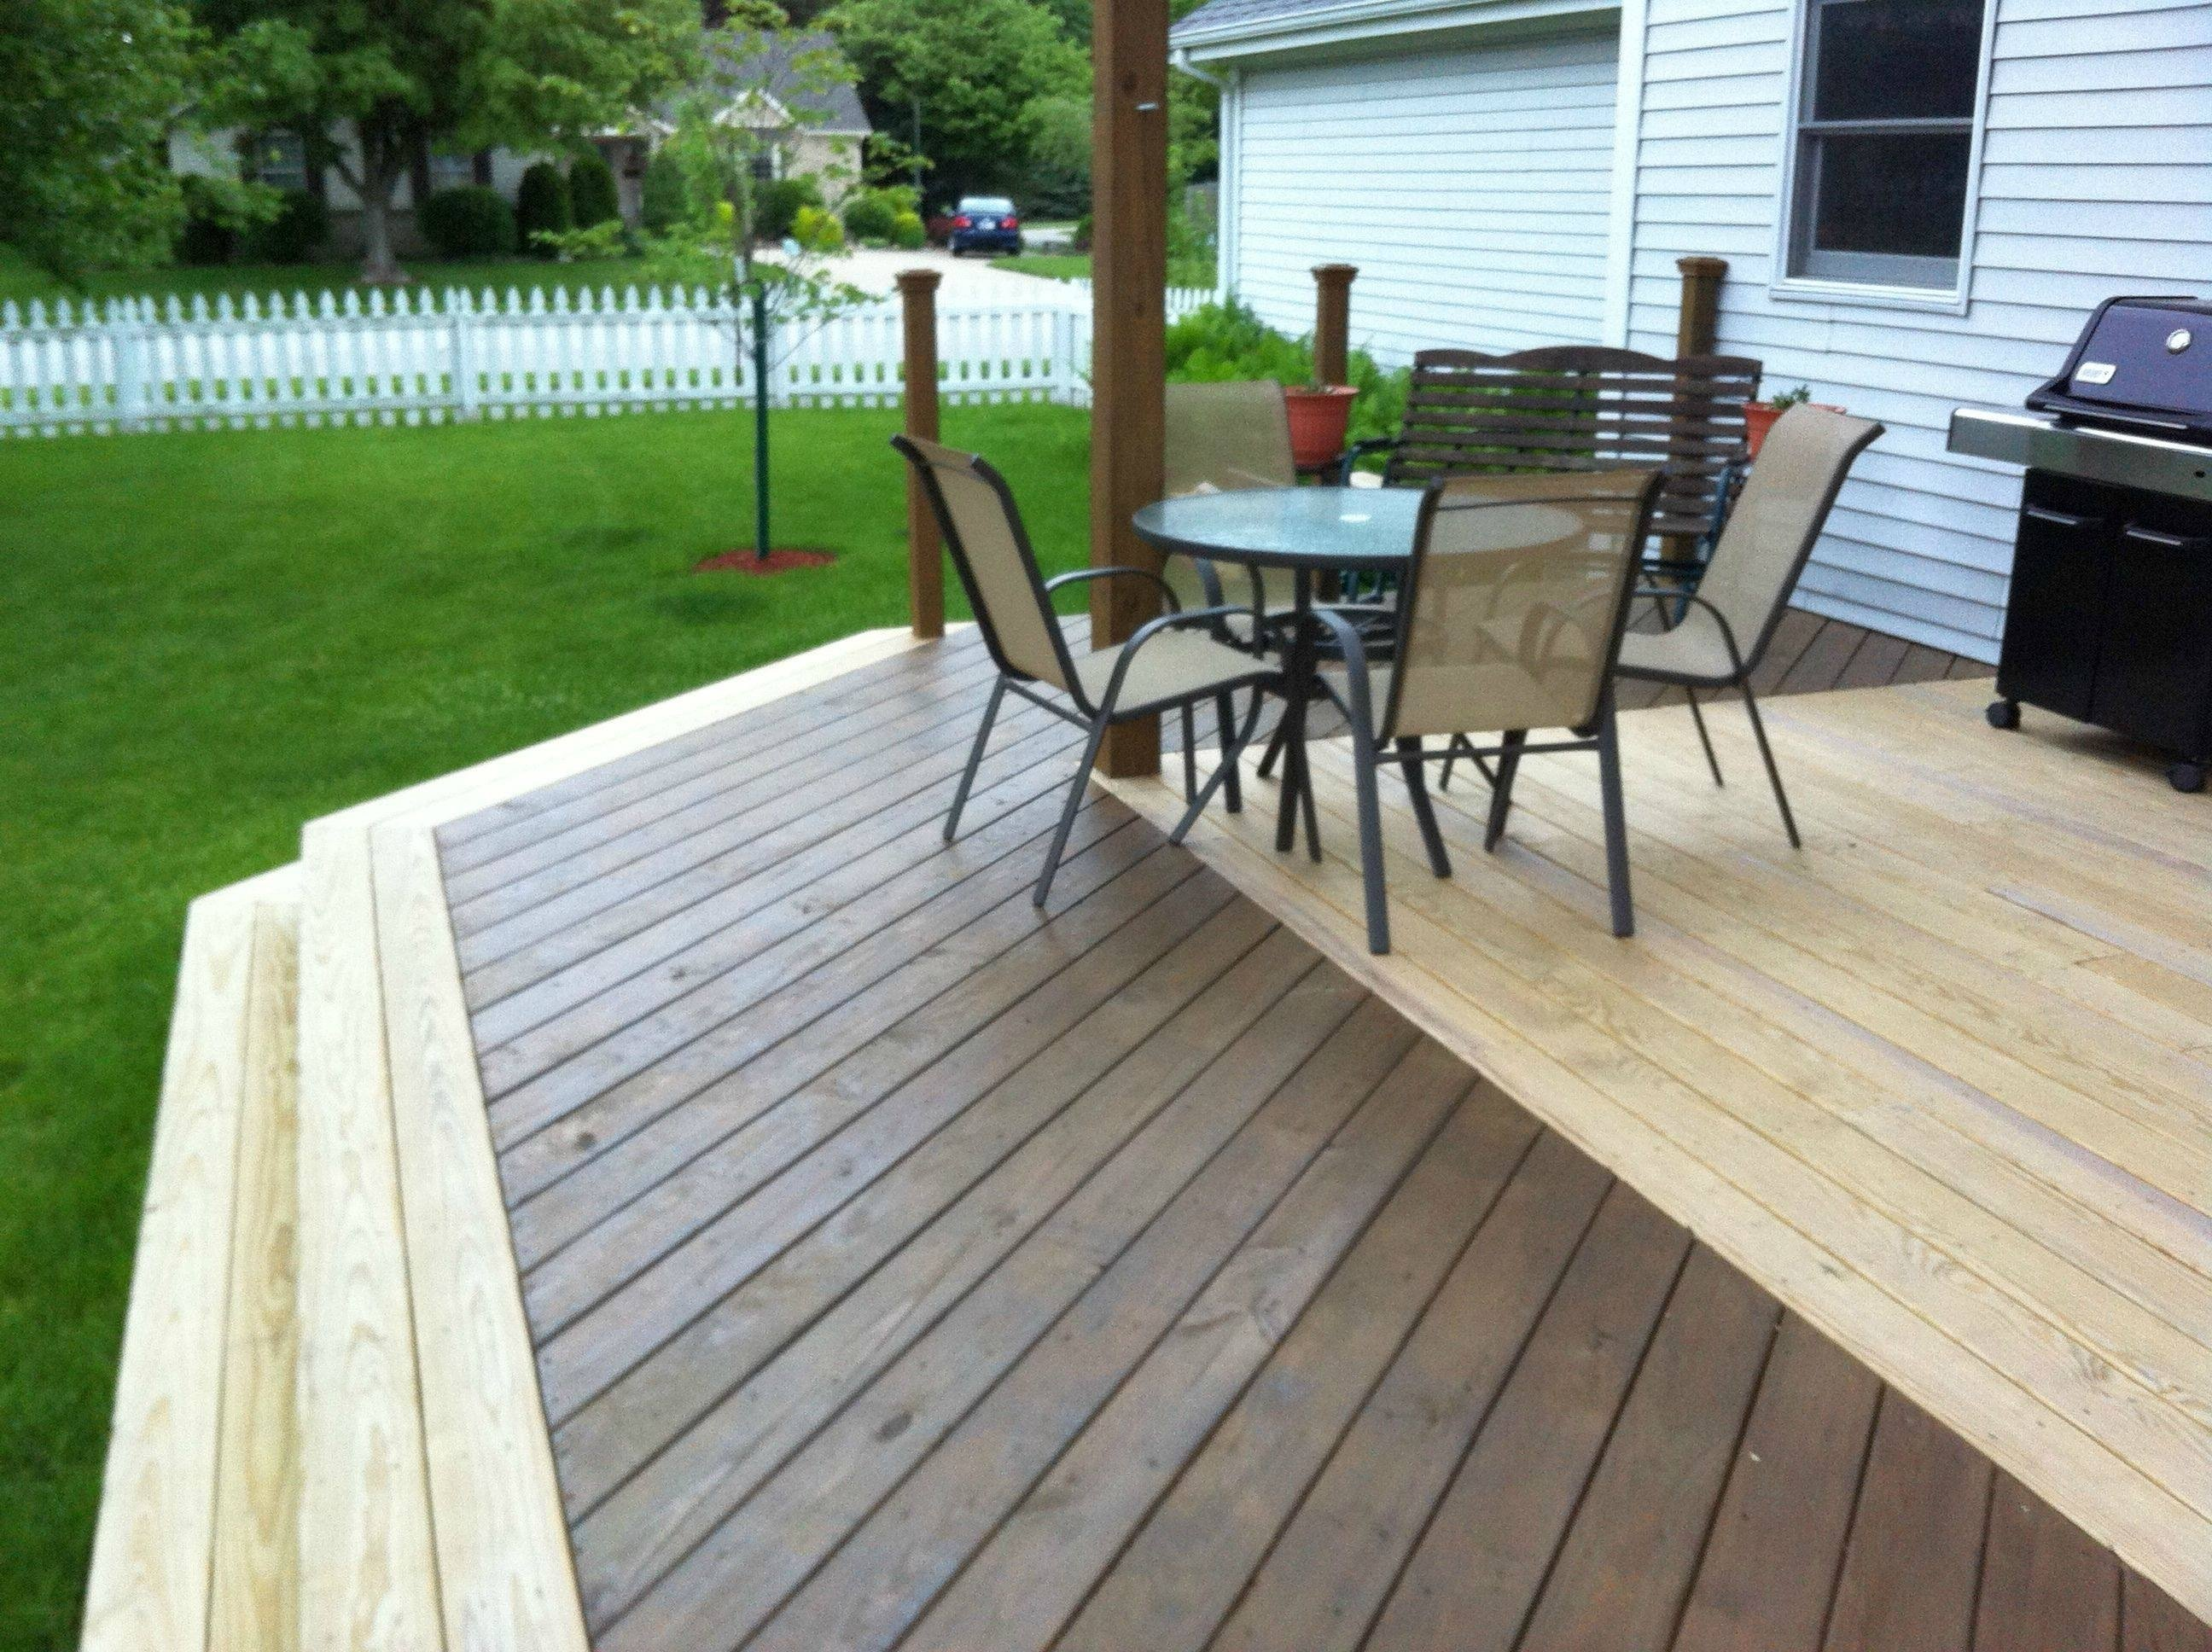 10 Spectacular Two Tone Deck Stain Ideas two tone deck stain ideas id like your opinion diy two tone or 2021